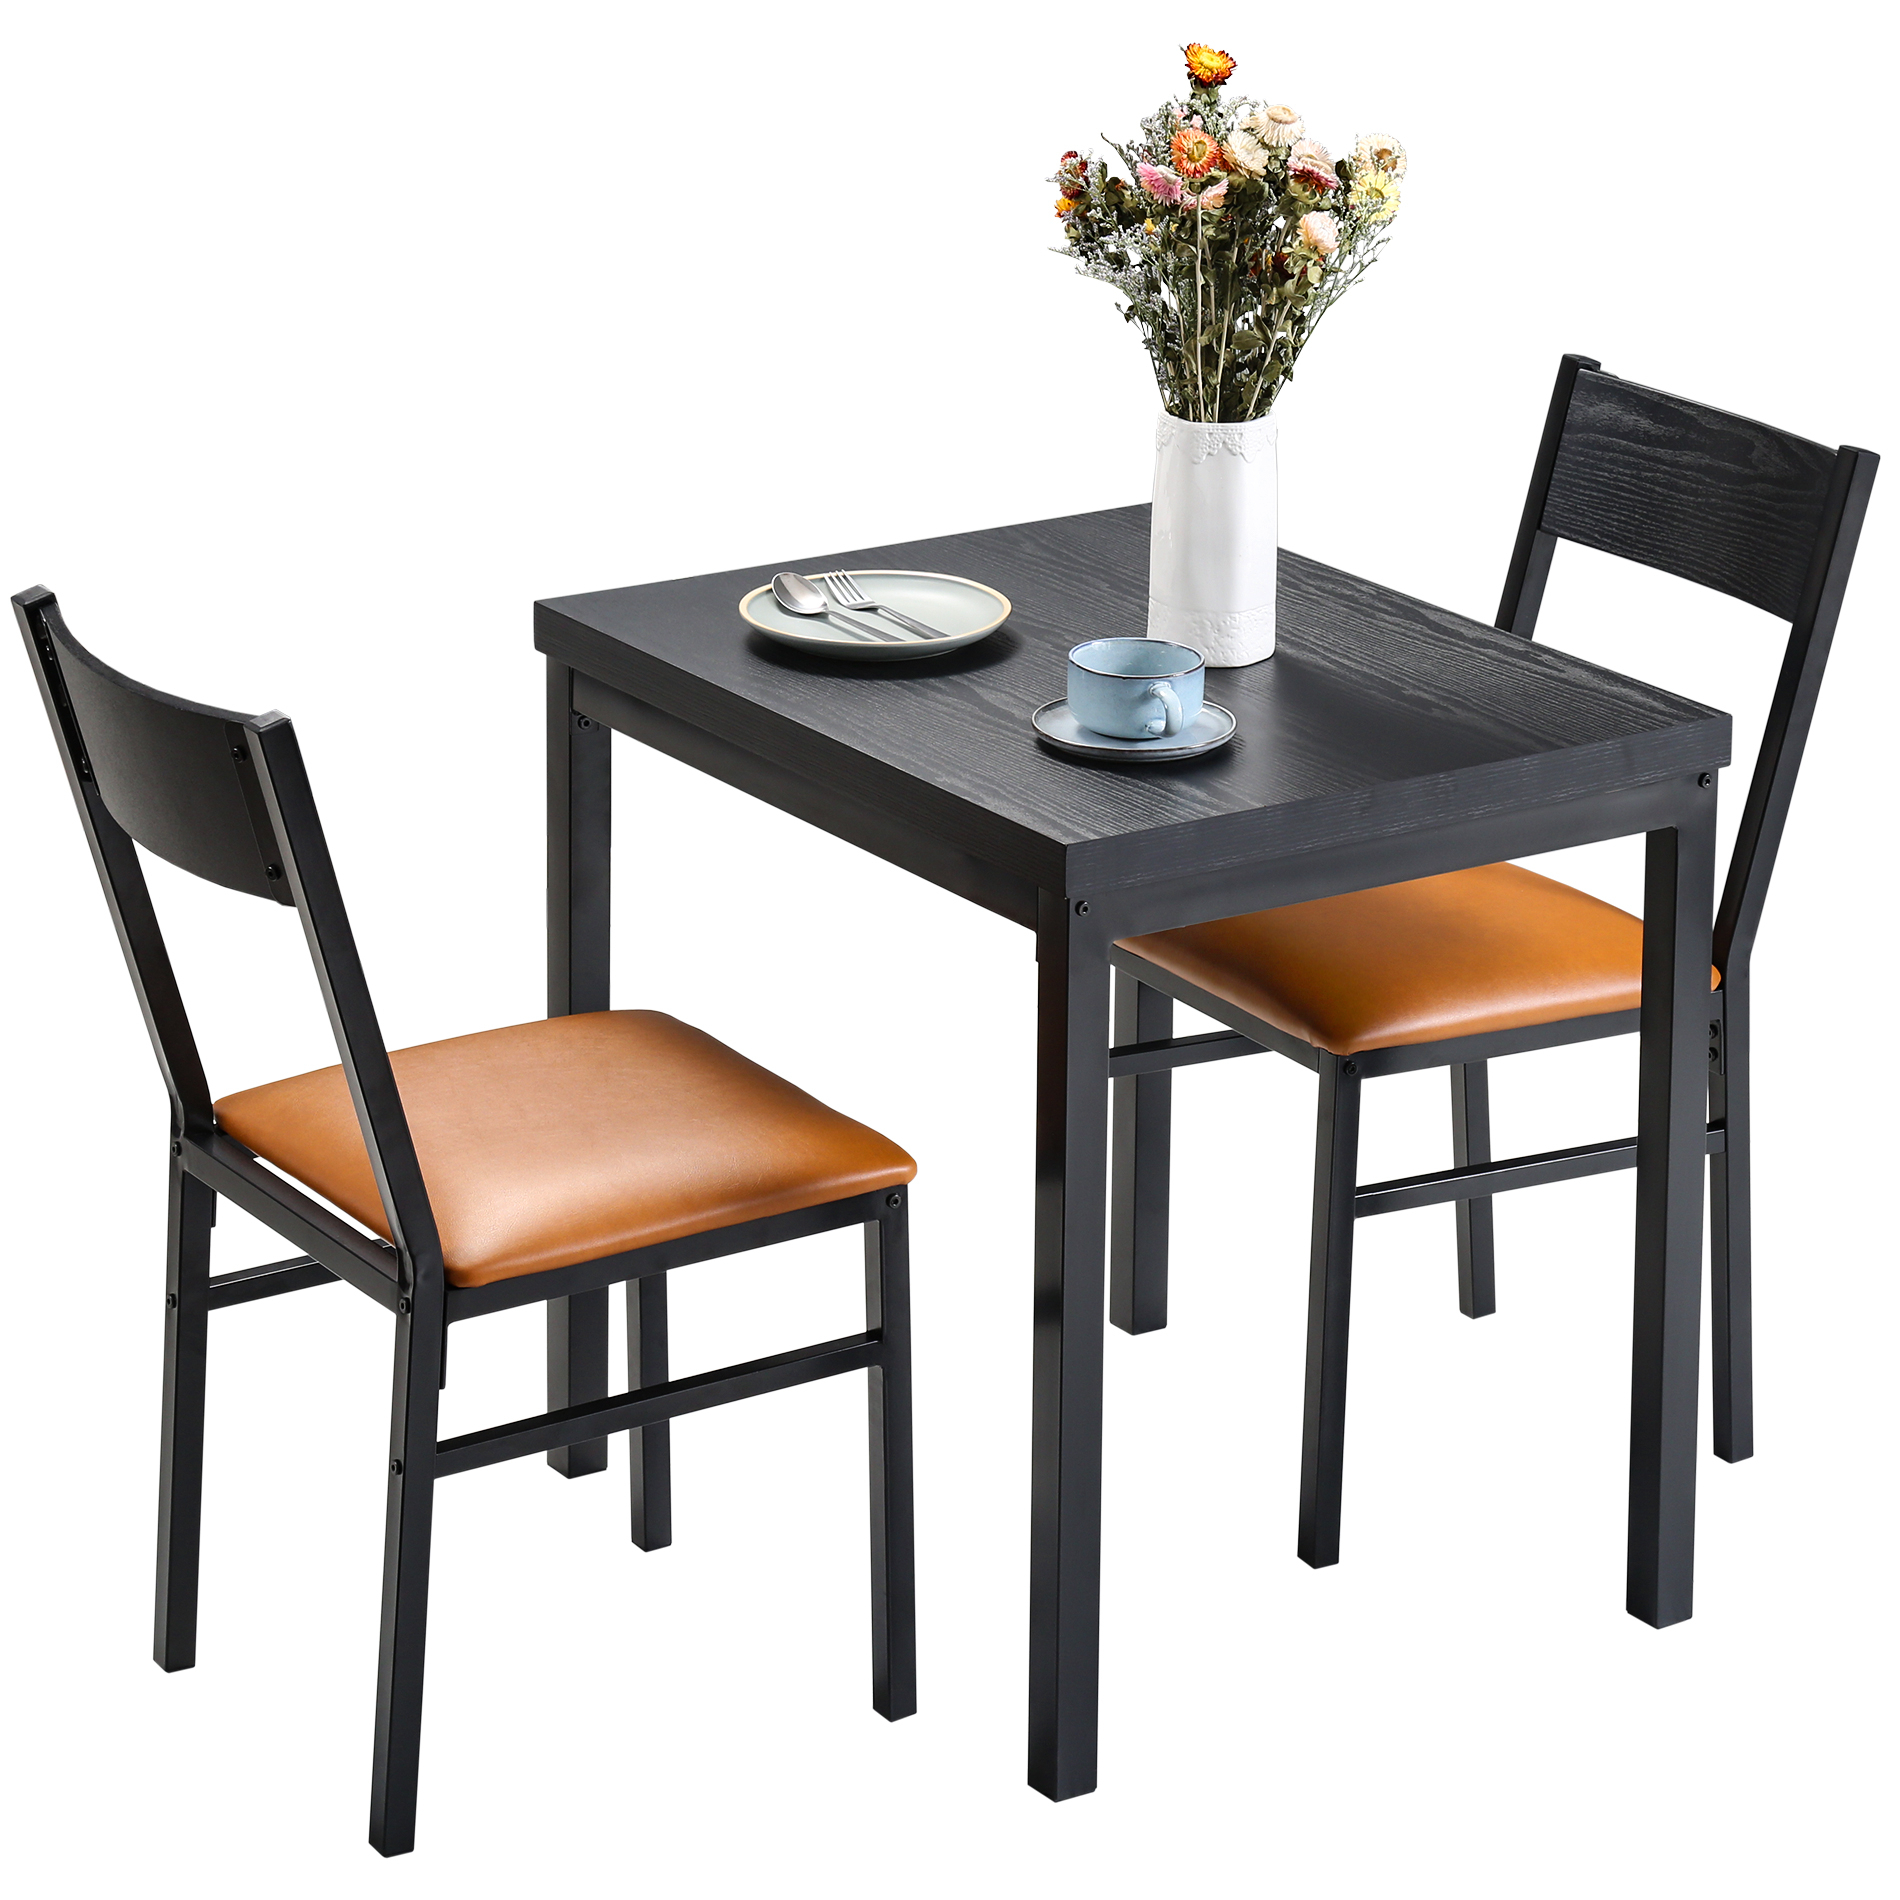 3 Piece Dining Table Set With Cushioned Chairs For Dining Pertaining To Best And Newest Tudor City 28'' Dining Tables (Photo 5 of 15)